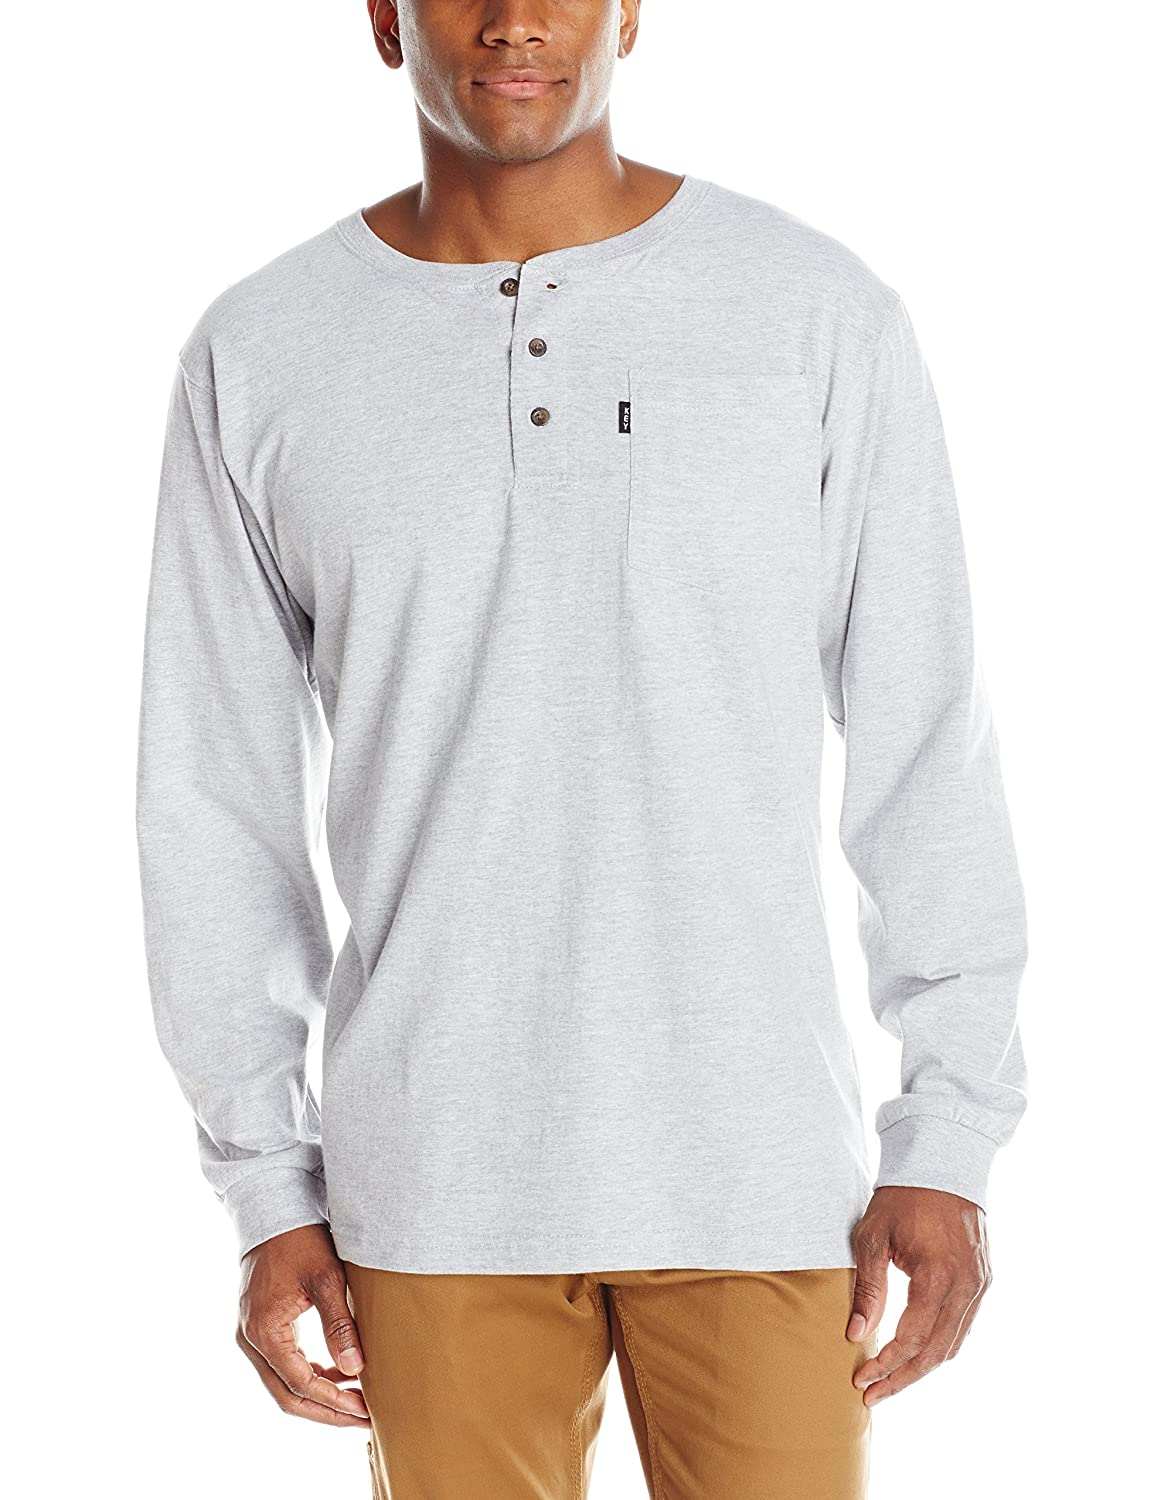 Key Apparel Men's Heavyweight 3-Button Long Sleeve Henley Pocket T-Shirt 865H